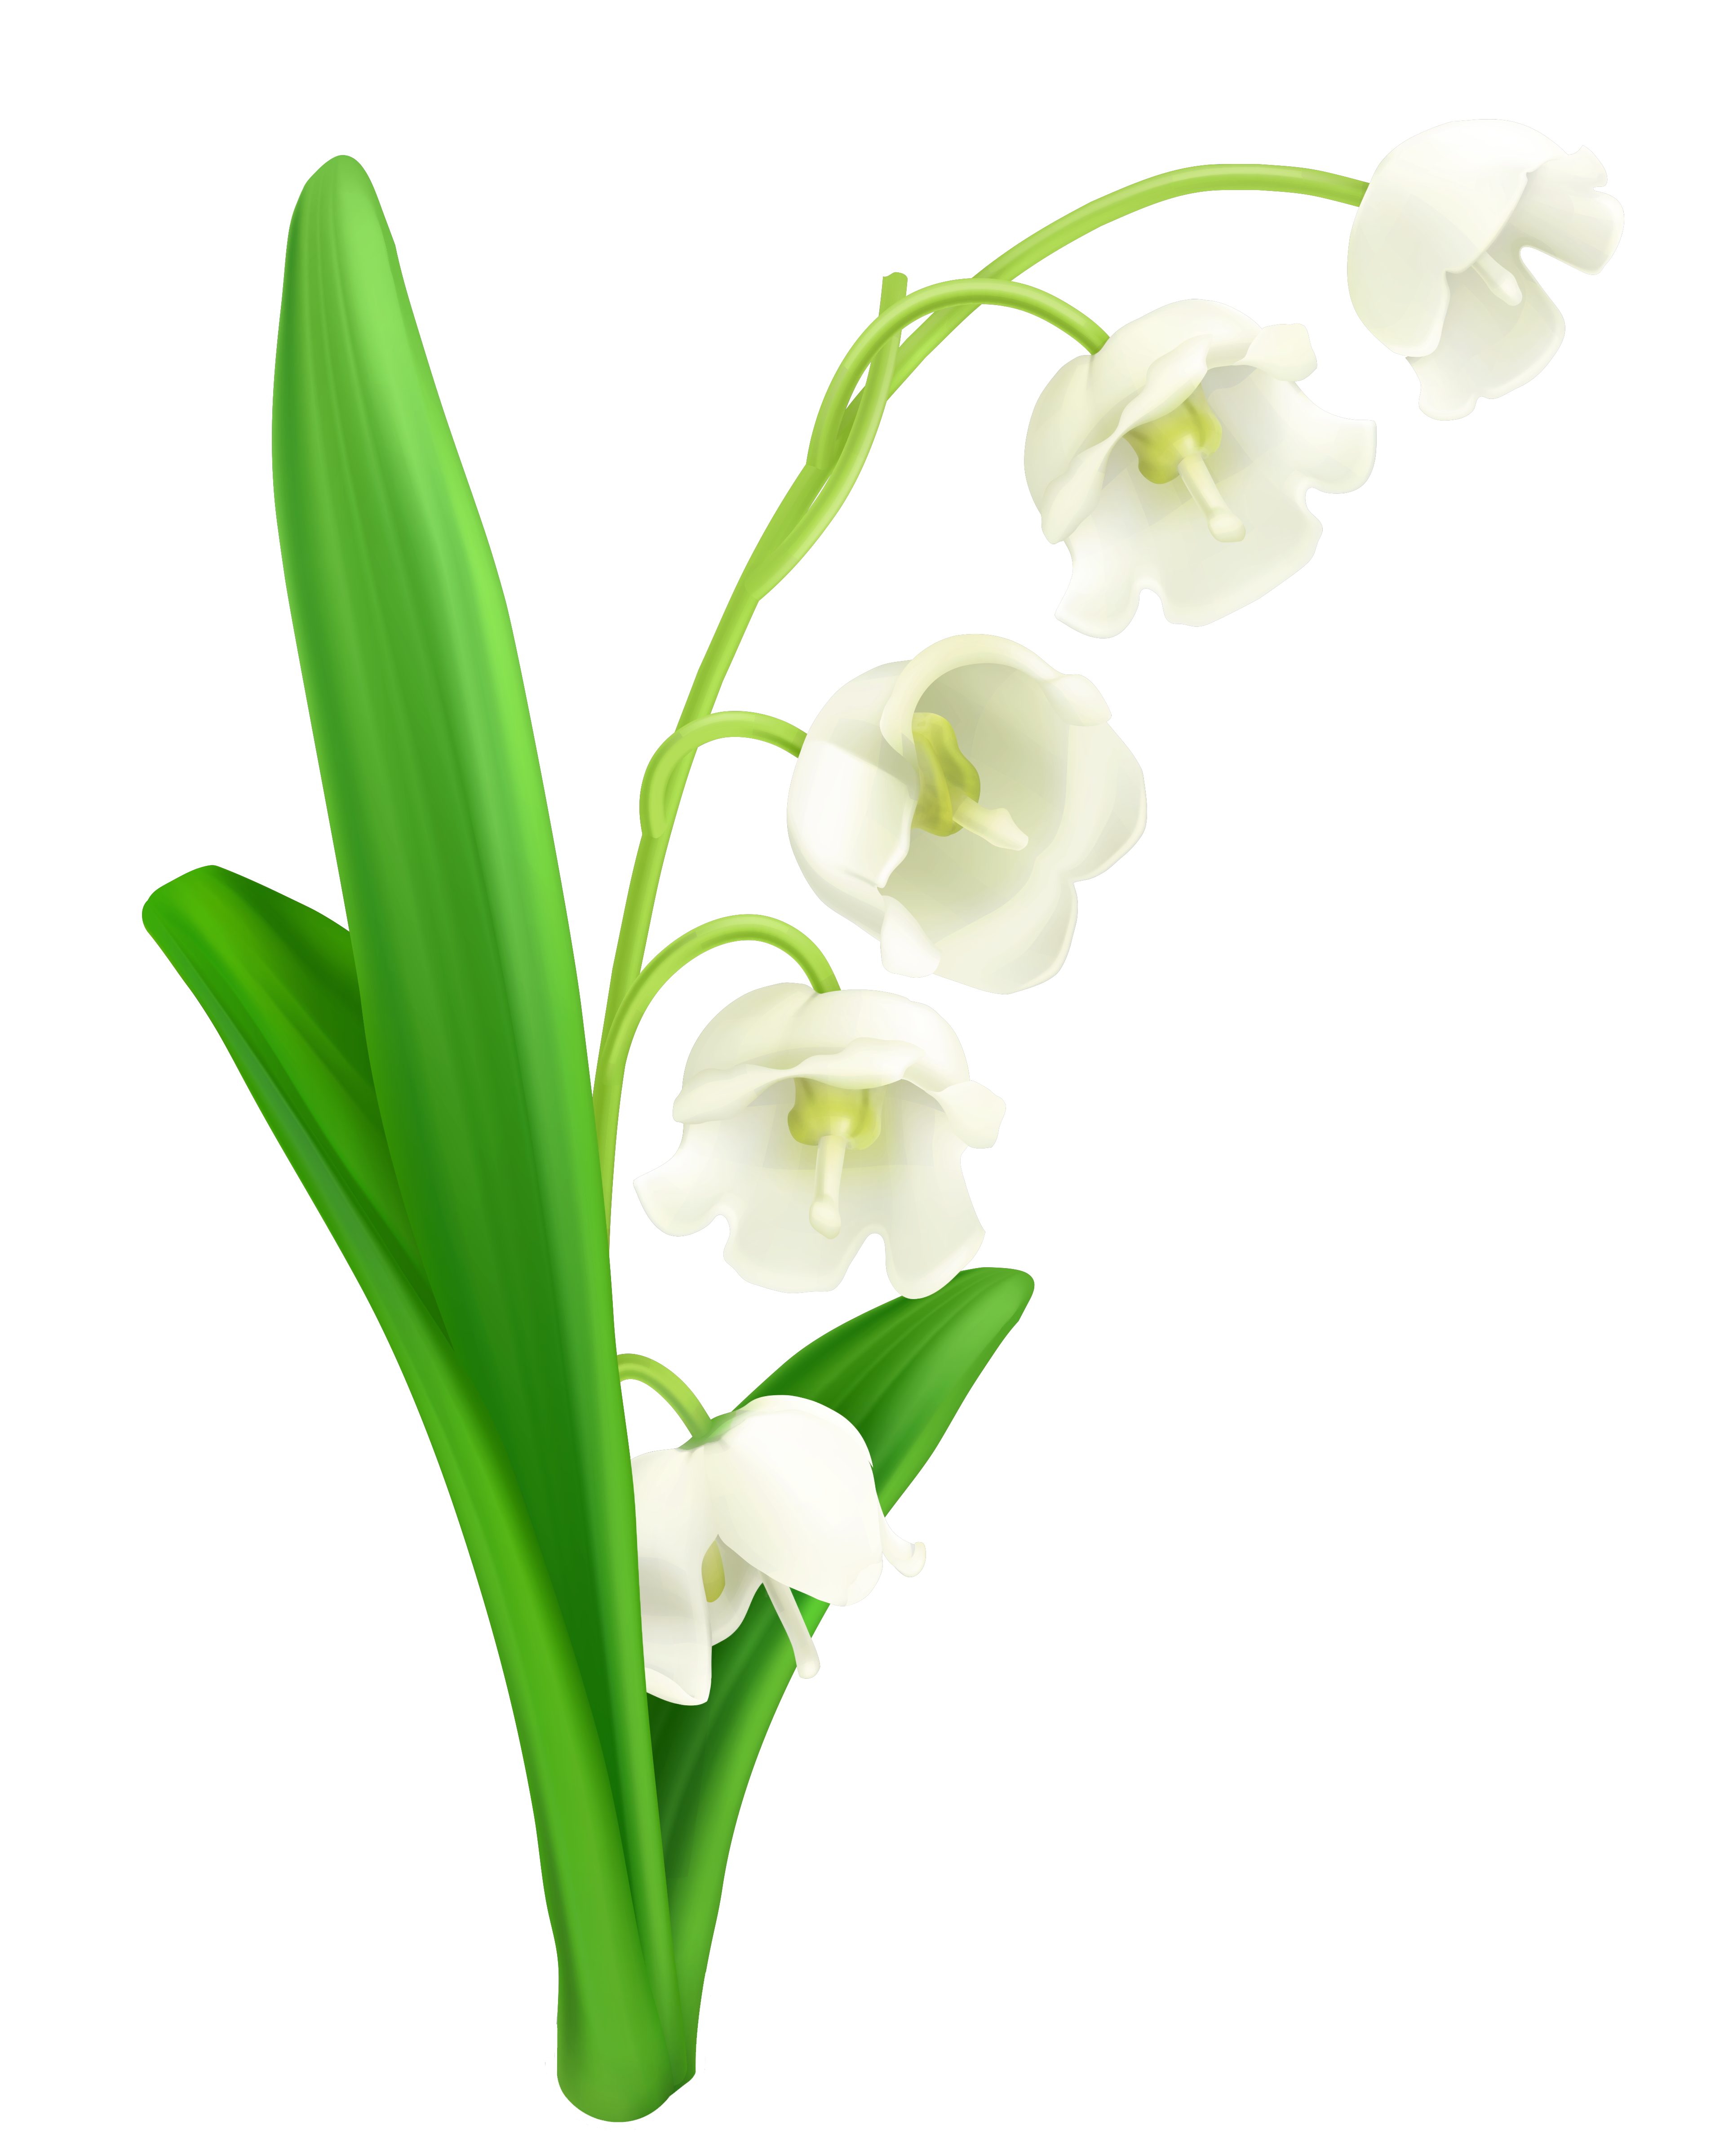 Lilly of the valley clipart free download Lily Of The Valley PNG Clipart | Gallery Yopriceville - High ... free download